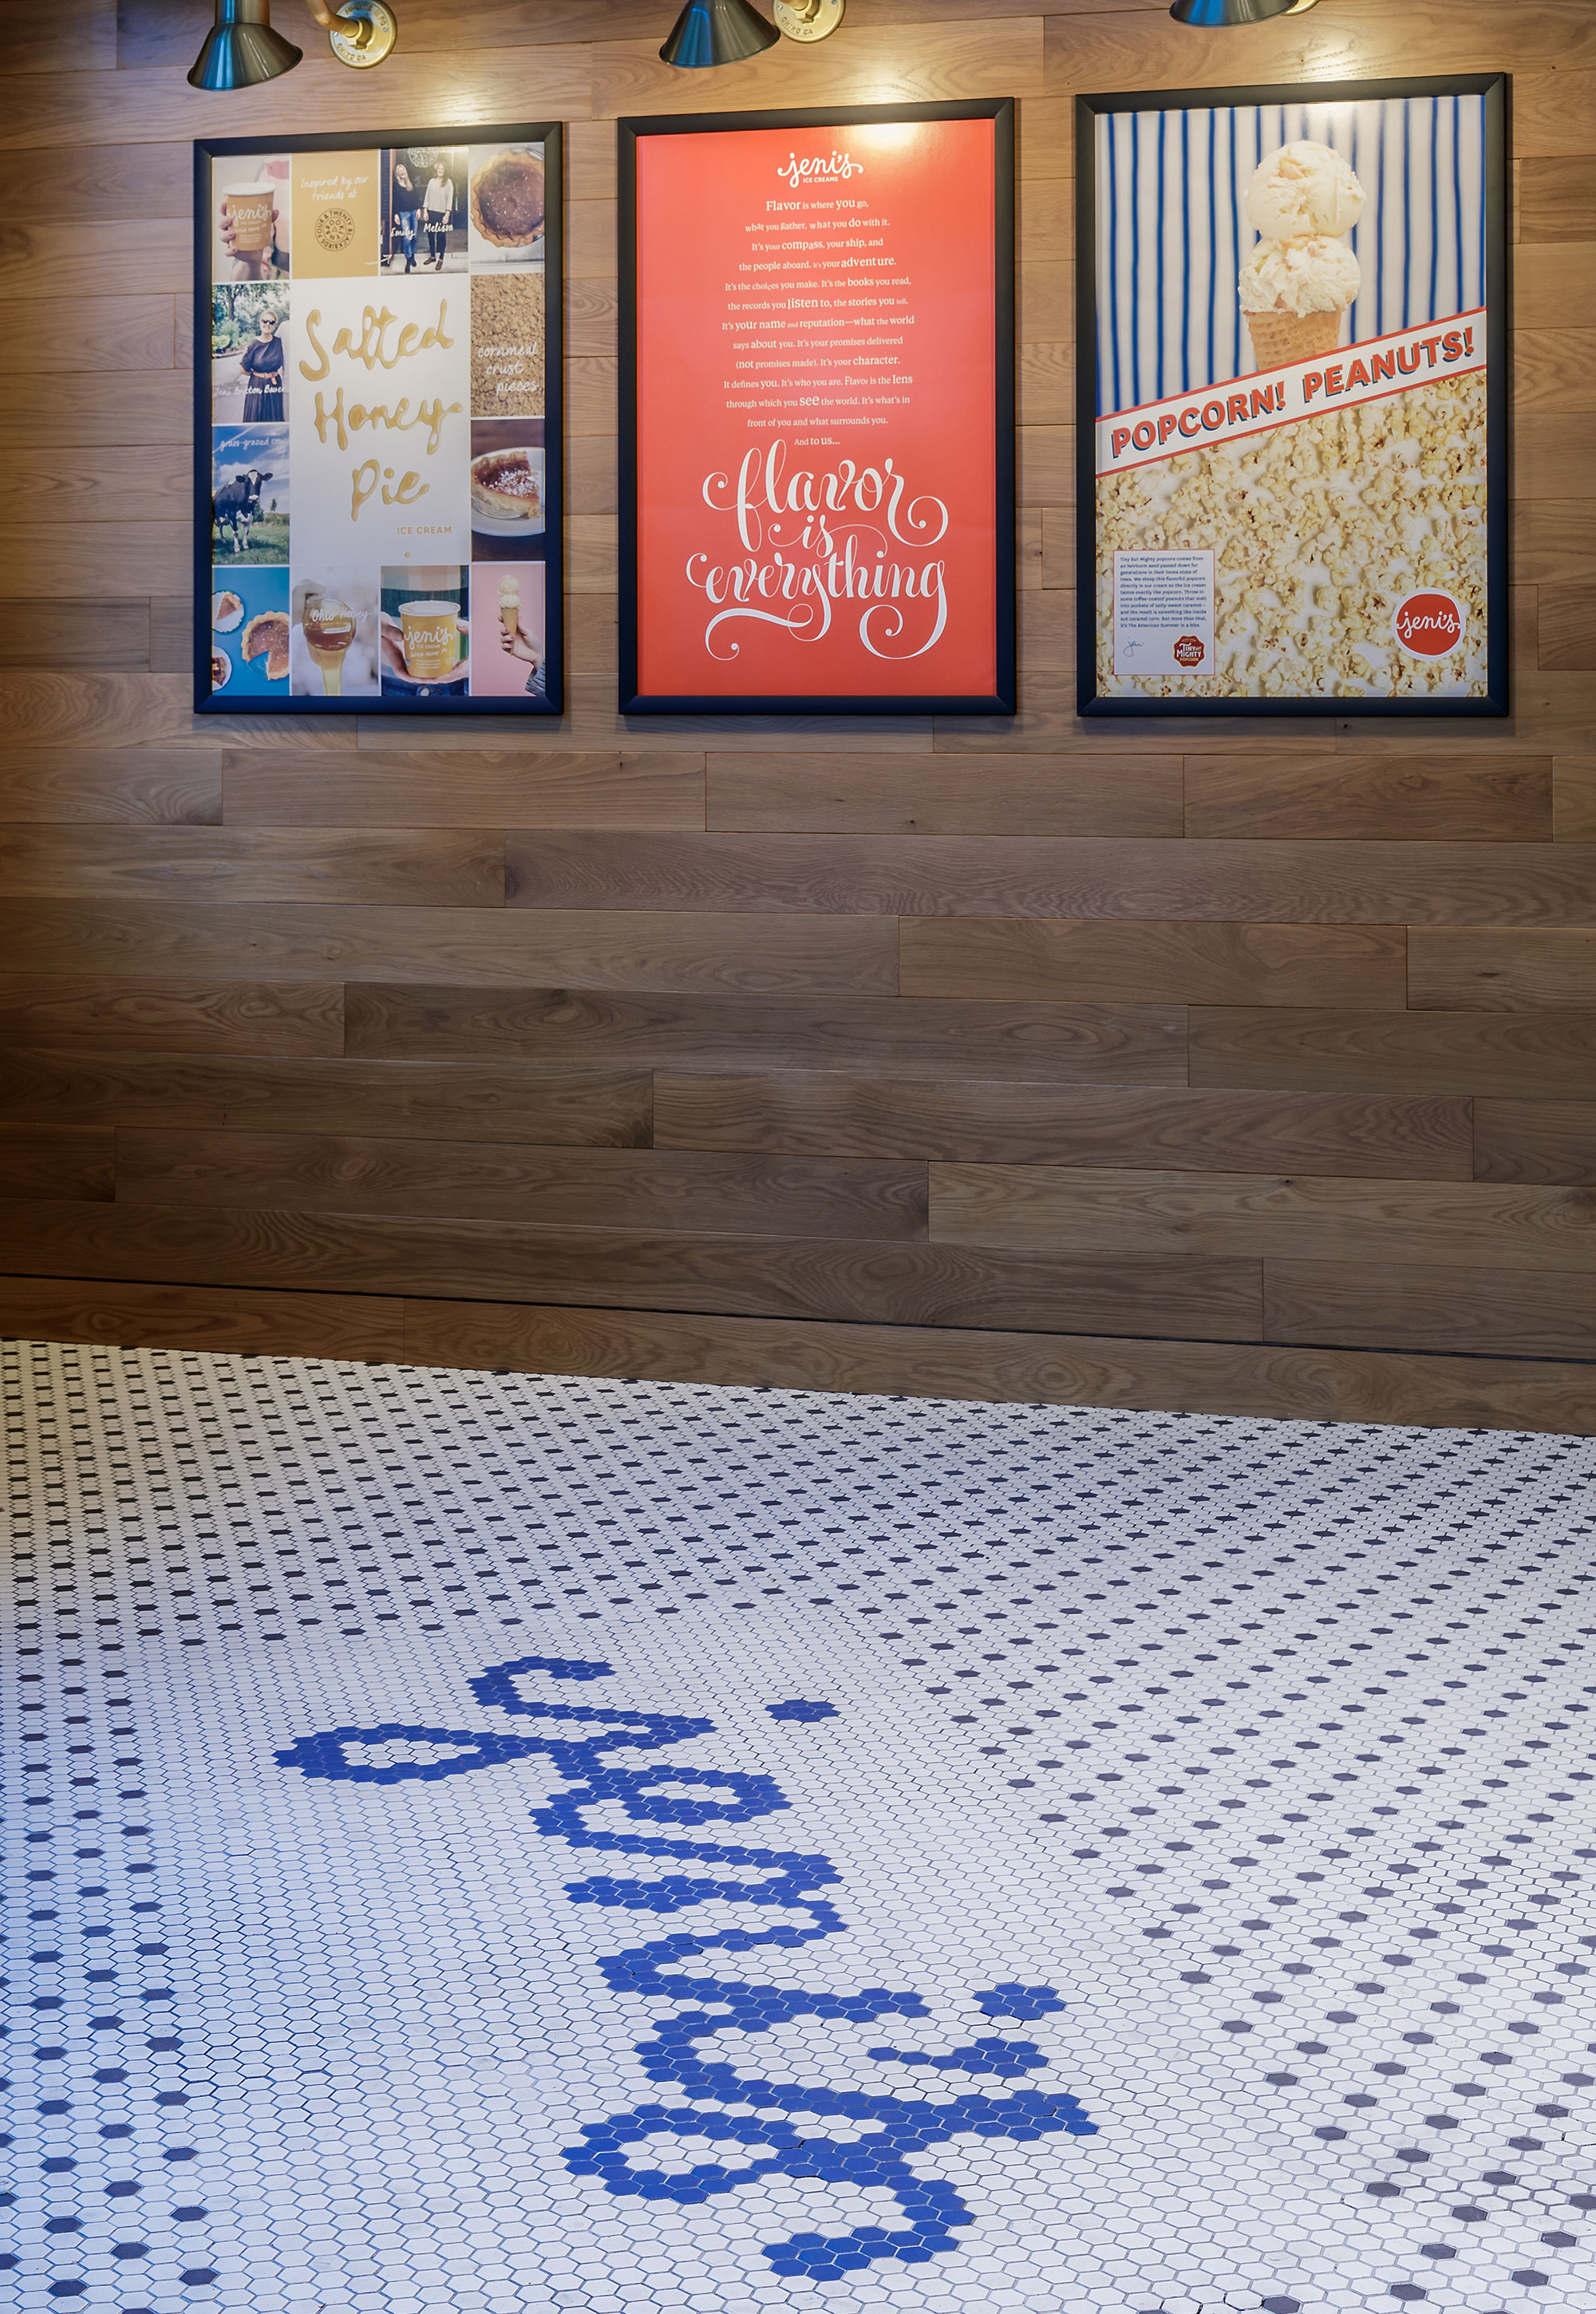 White tile floor with Jeni's in tile letters